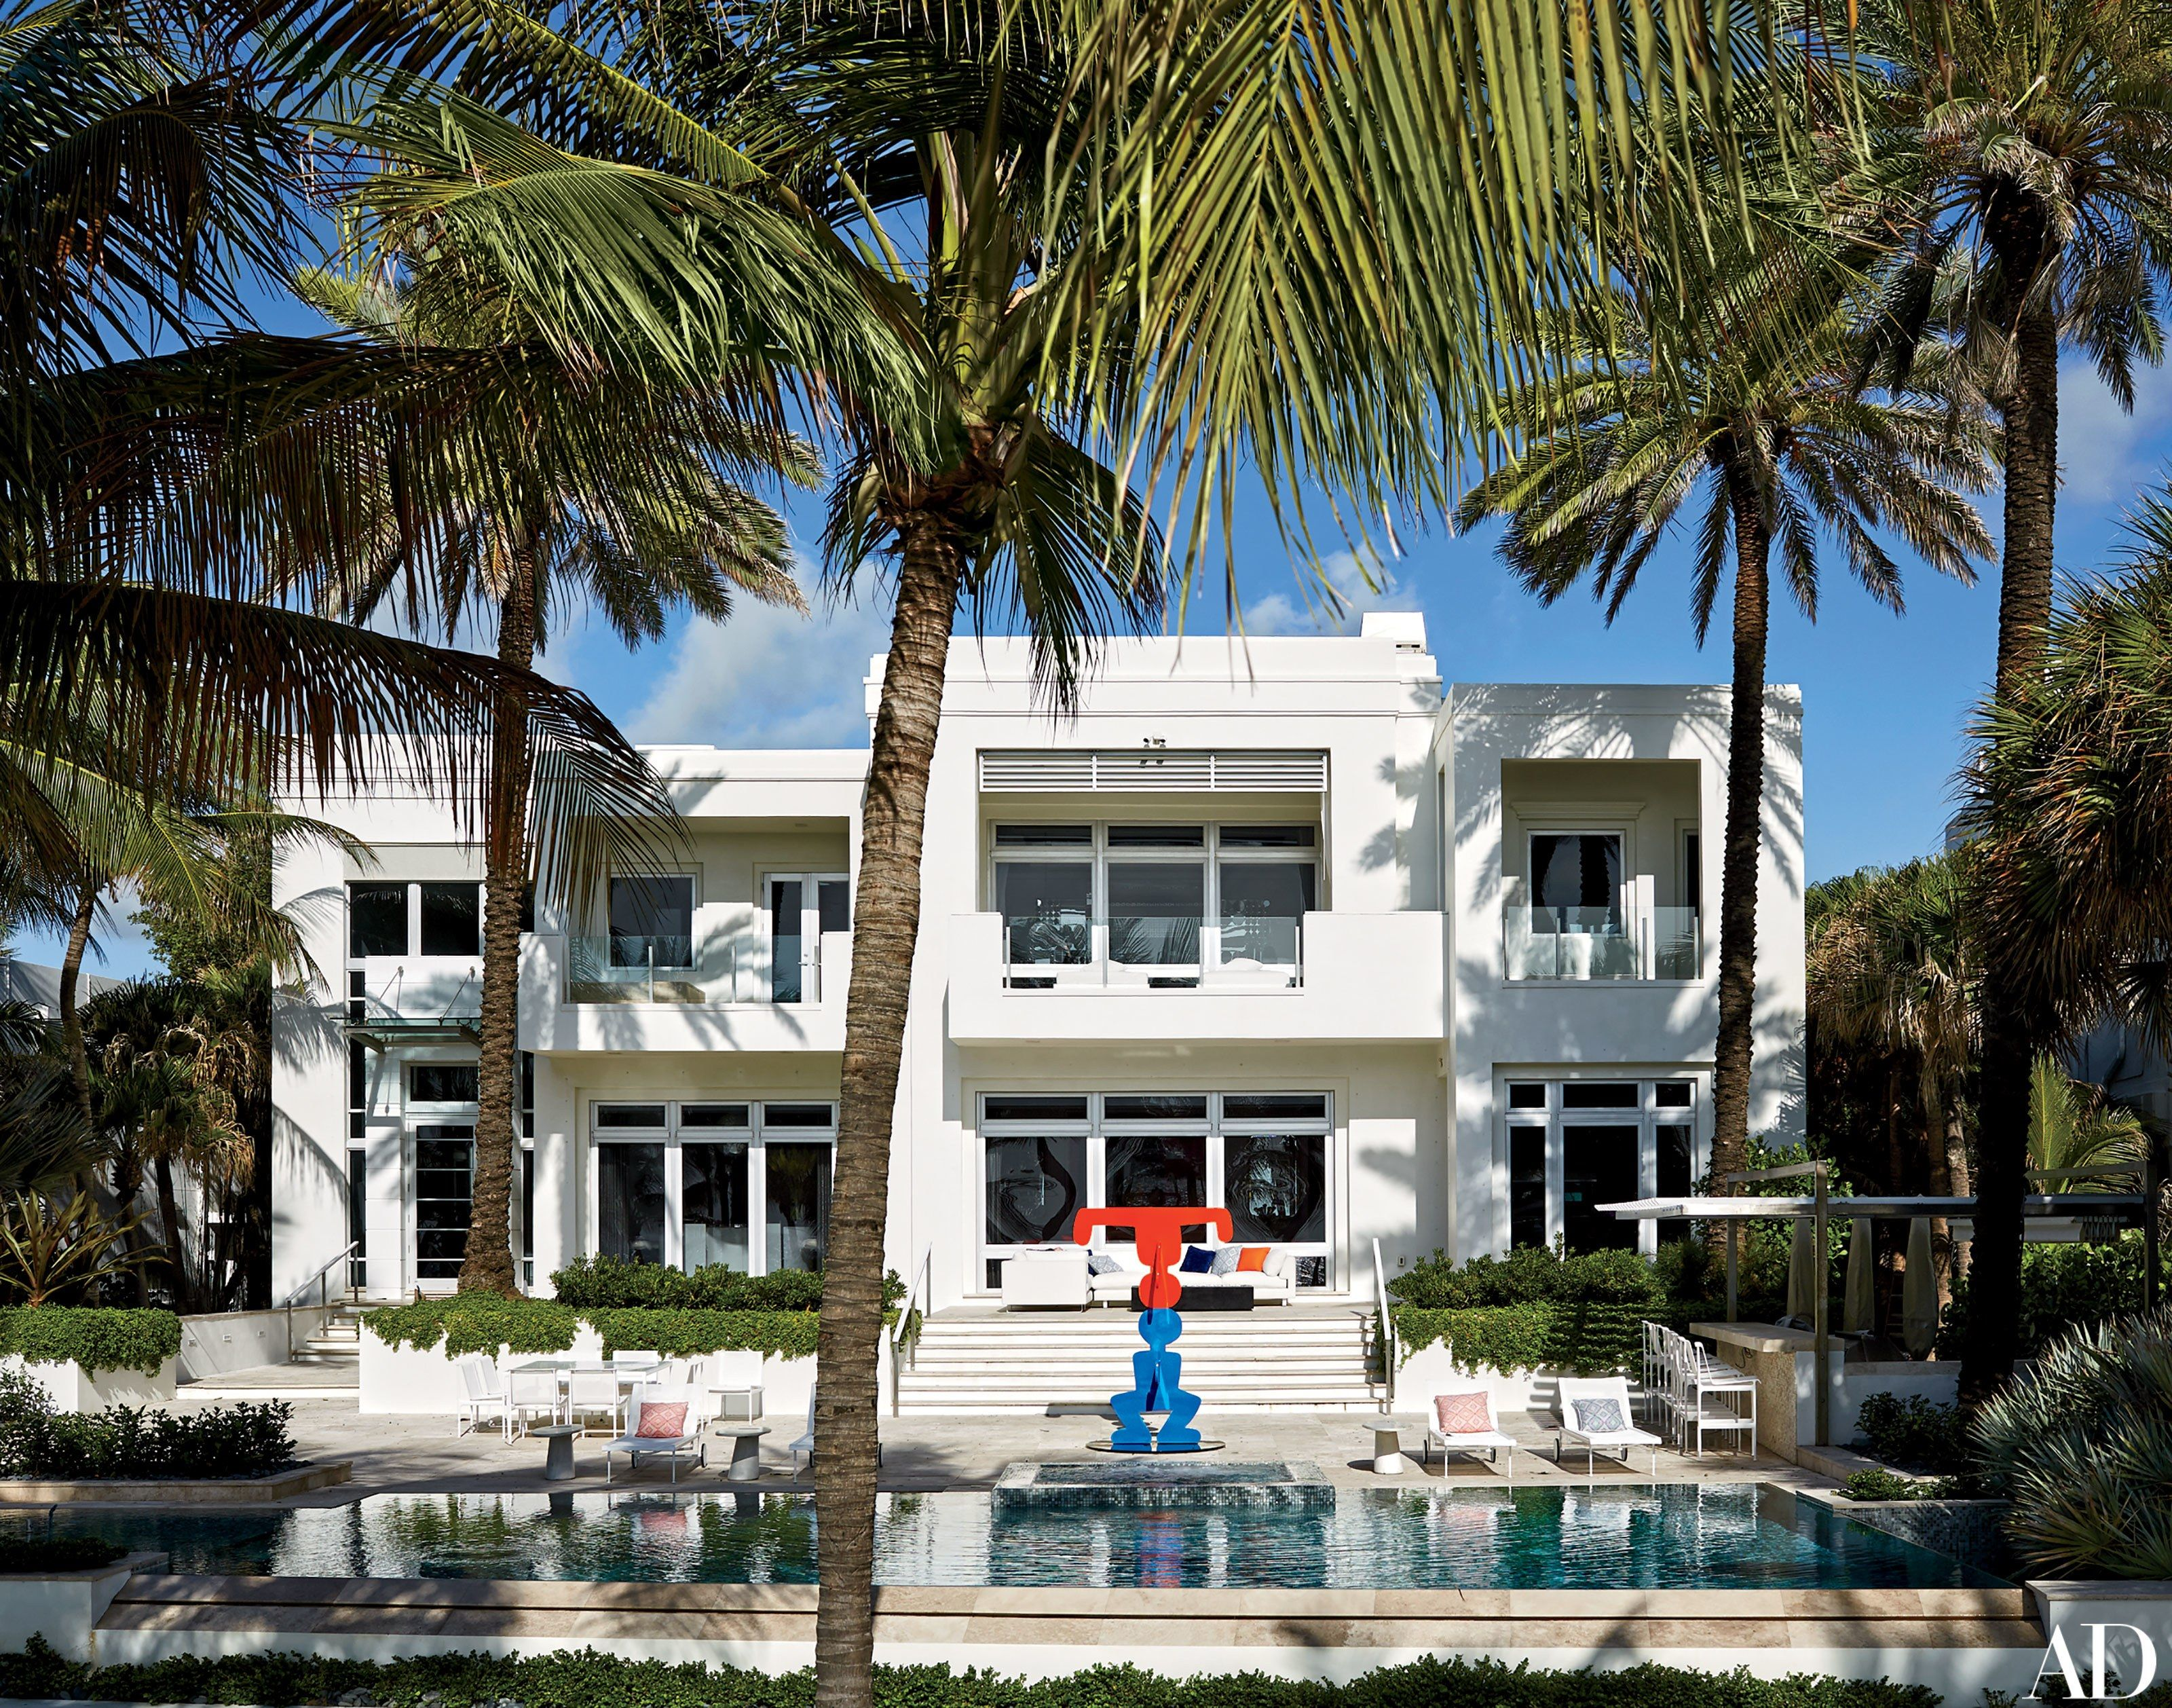 Fashion Designer Tommy Hilfiger's Vibrant Home in Miami Photos | Architectural Digest